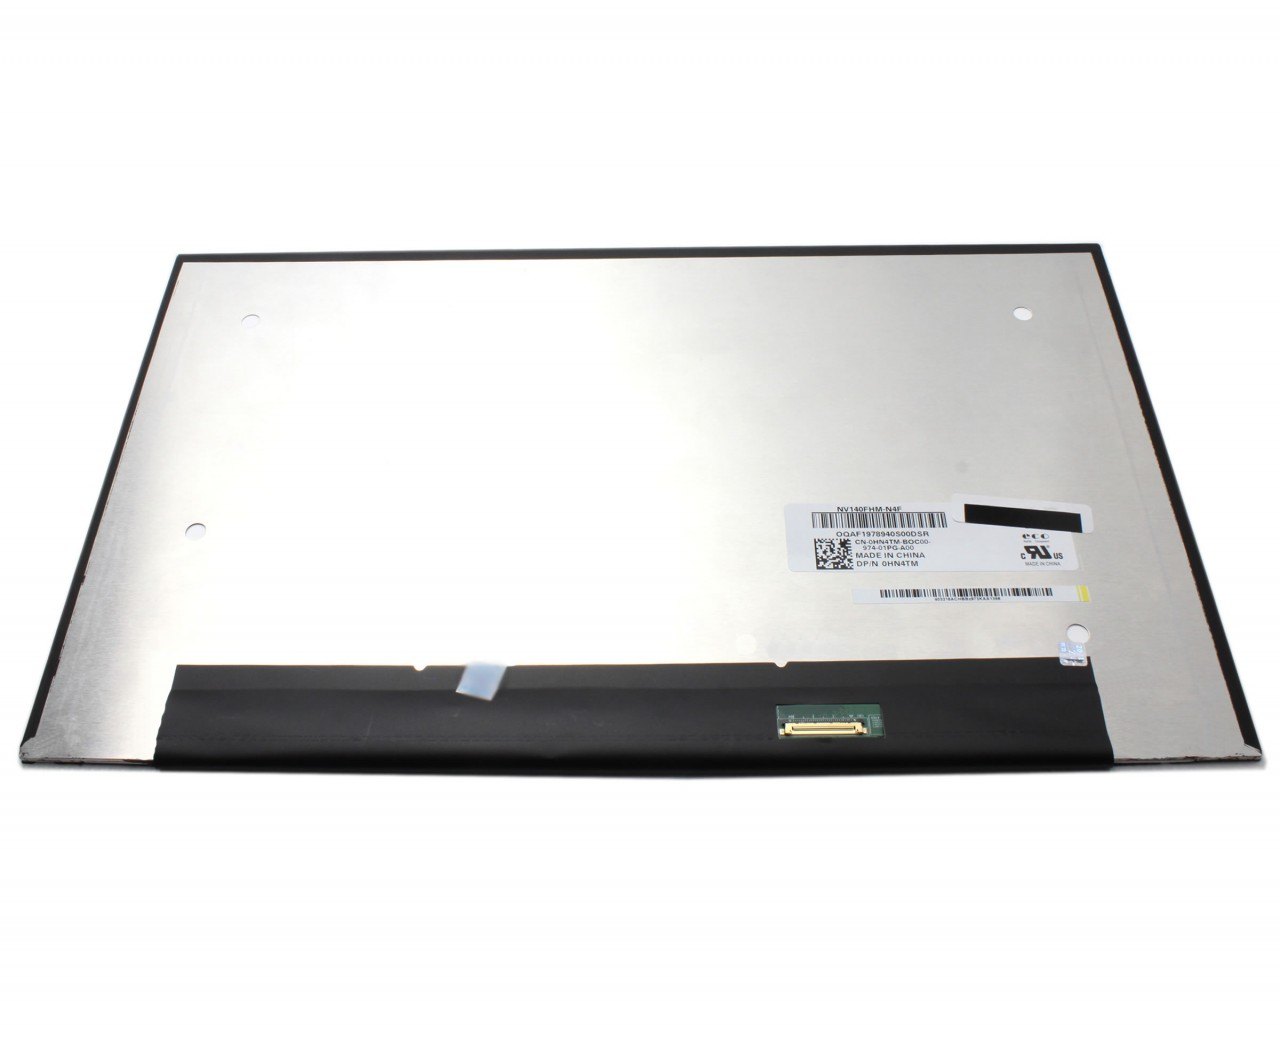 Display laptop Dell Latitude 7468 Ecran 14.0 1920x1080 30 pinni eDP imagine powerlaptop.ro 2021